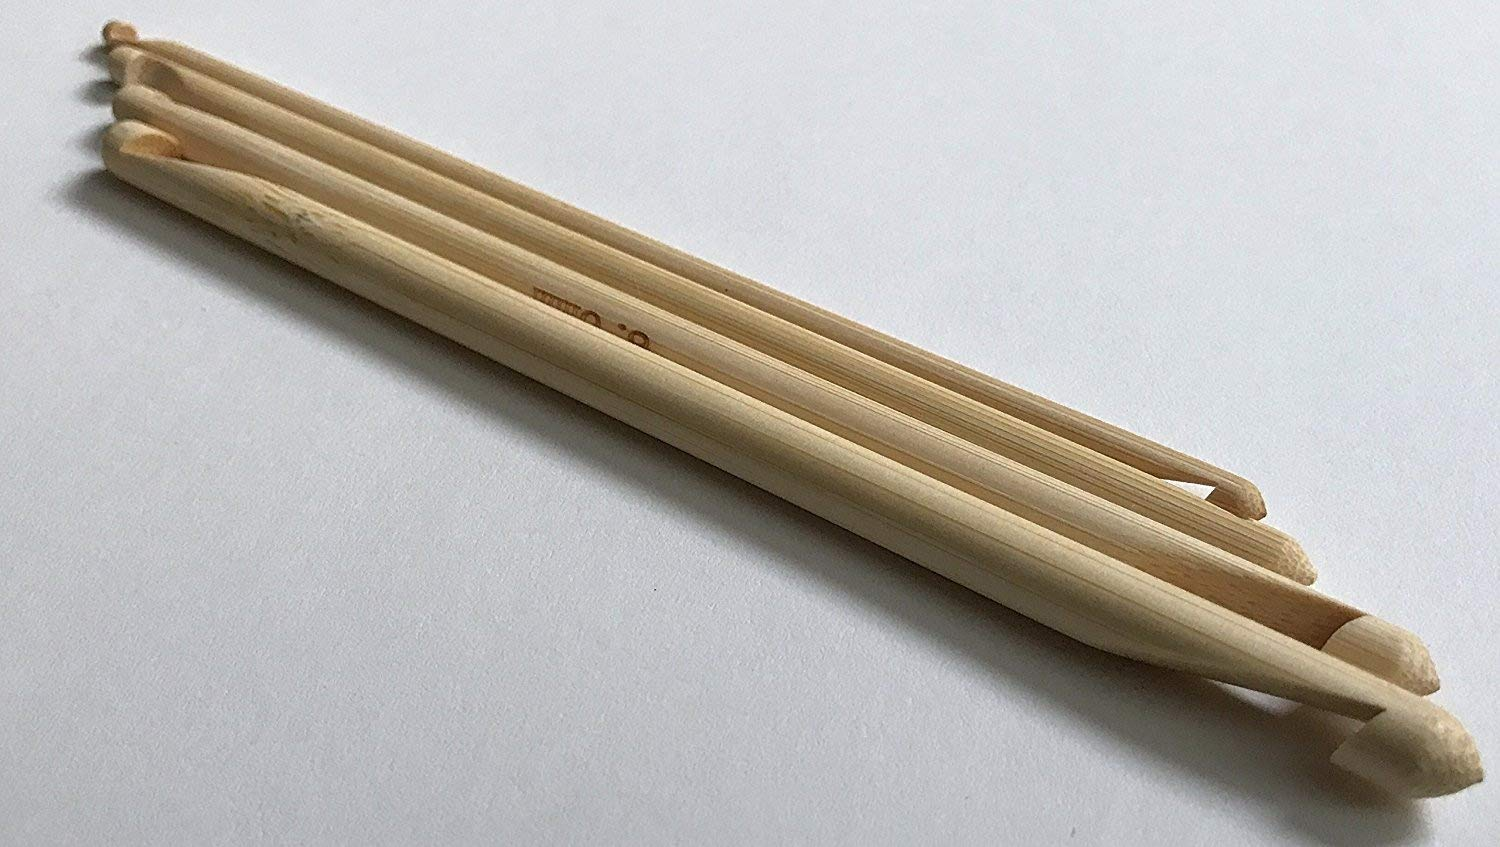 Brand New Double Ended Tunisian Bamboo Crochet Hook 4 Sizes: 7.0 mm G H J Set Sweet Crafty Tools